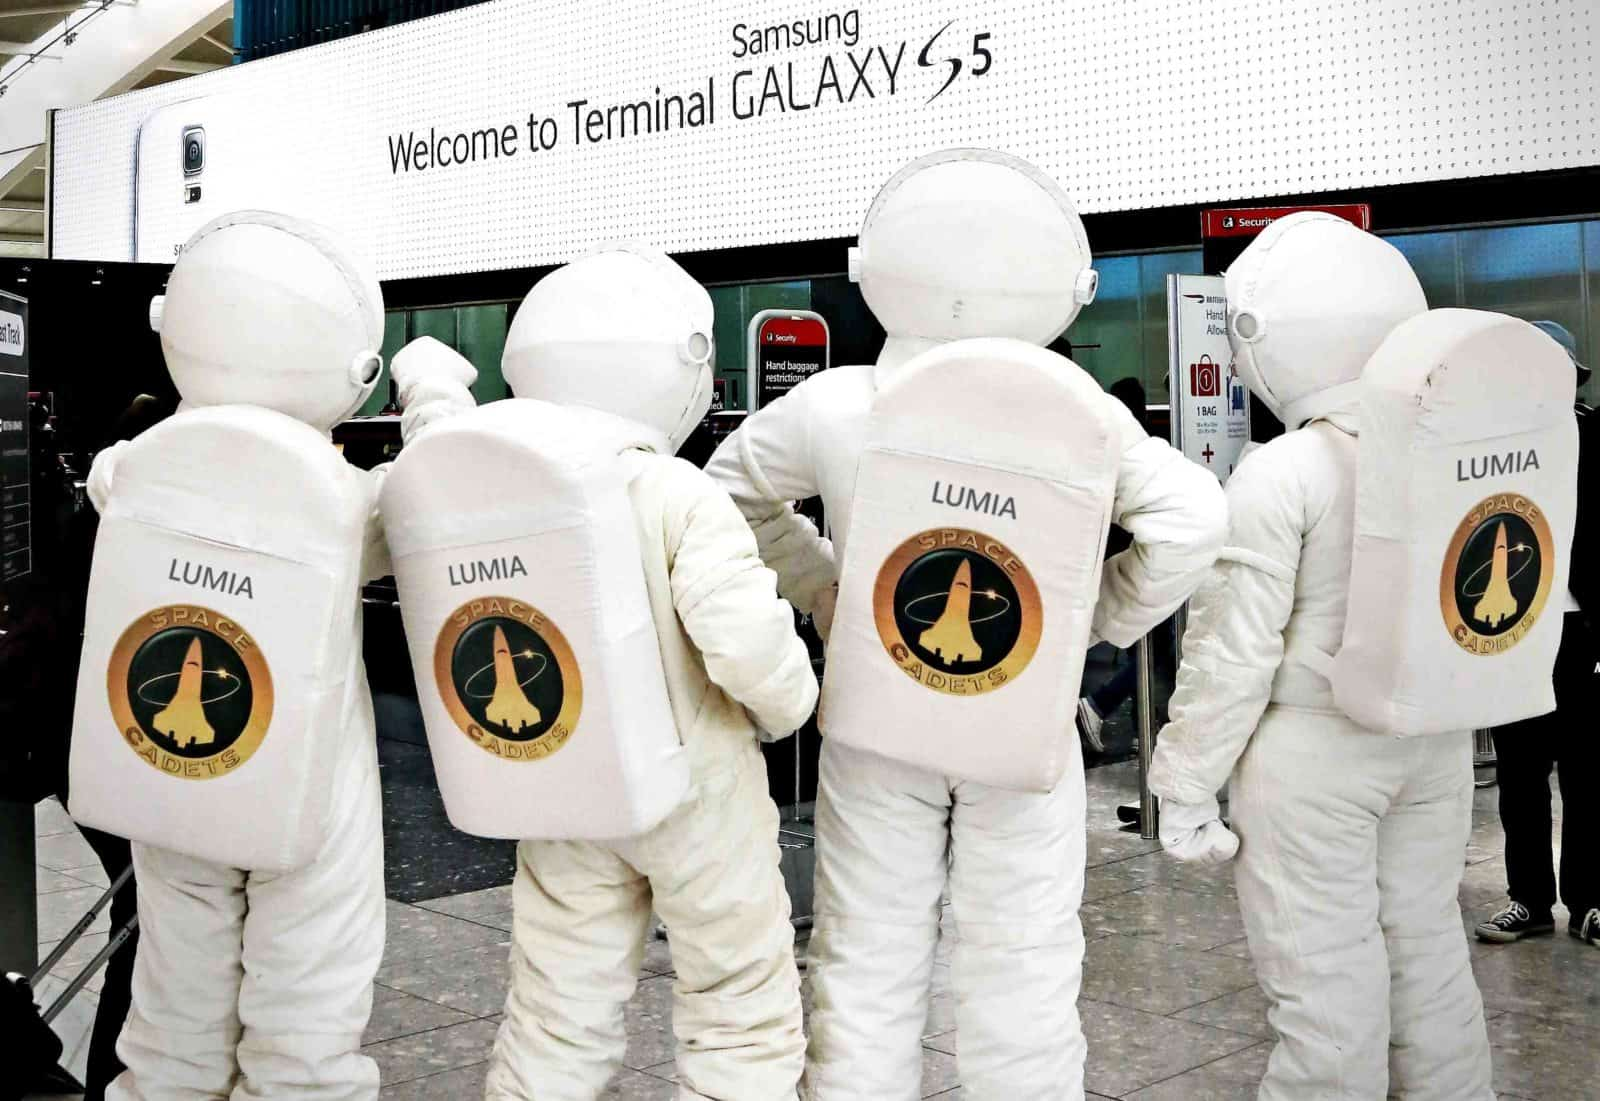 Microsoft-Devices-give-a-tongue-in-cheek-reaction-to-the-advertising-takeover-of-Heathrow-Terminal-5-by-sending-astronauts-in-search-of-the-elusive-flight-to-the-Galaxy.